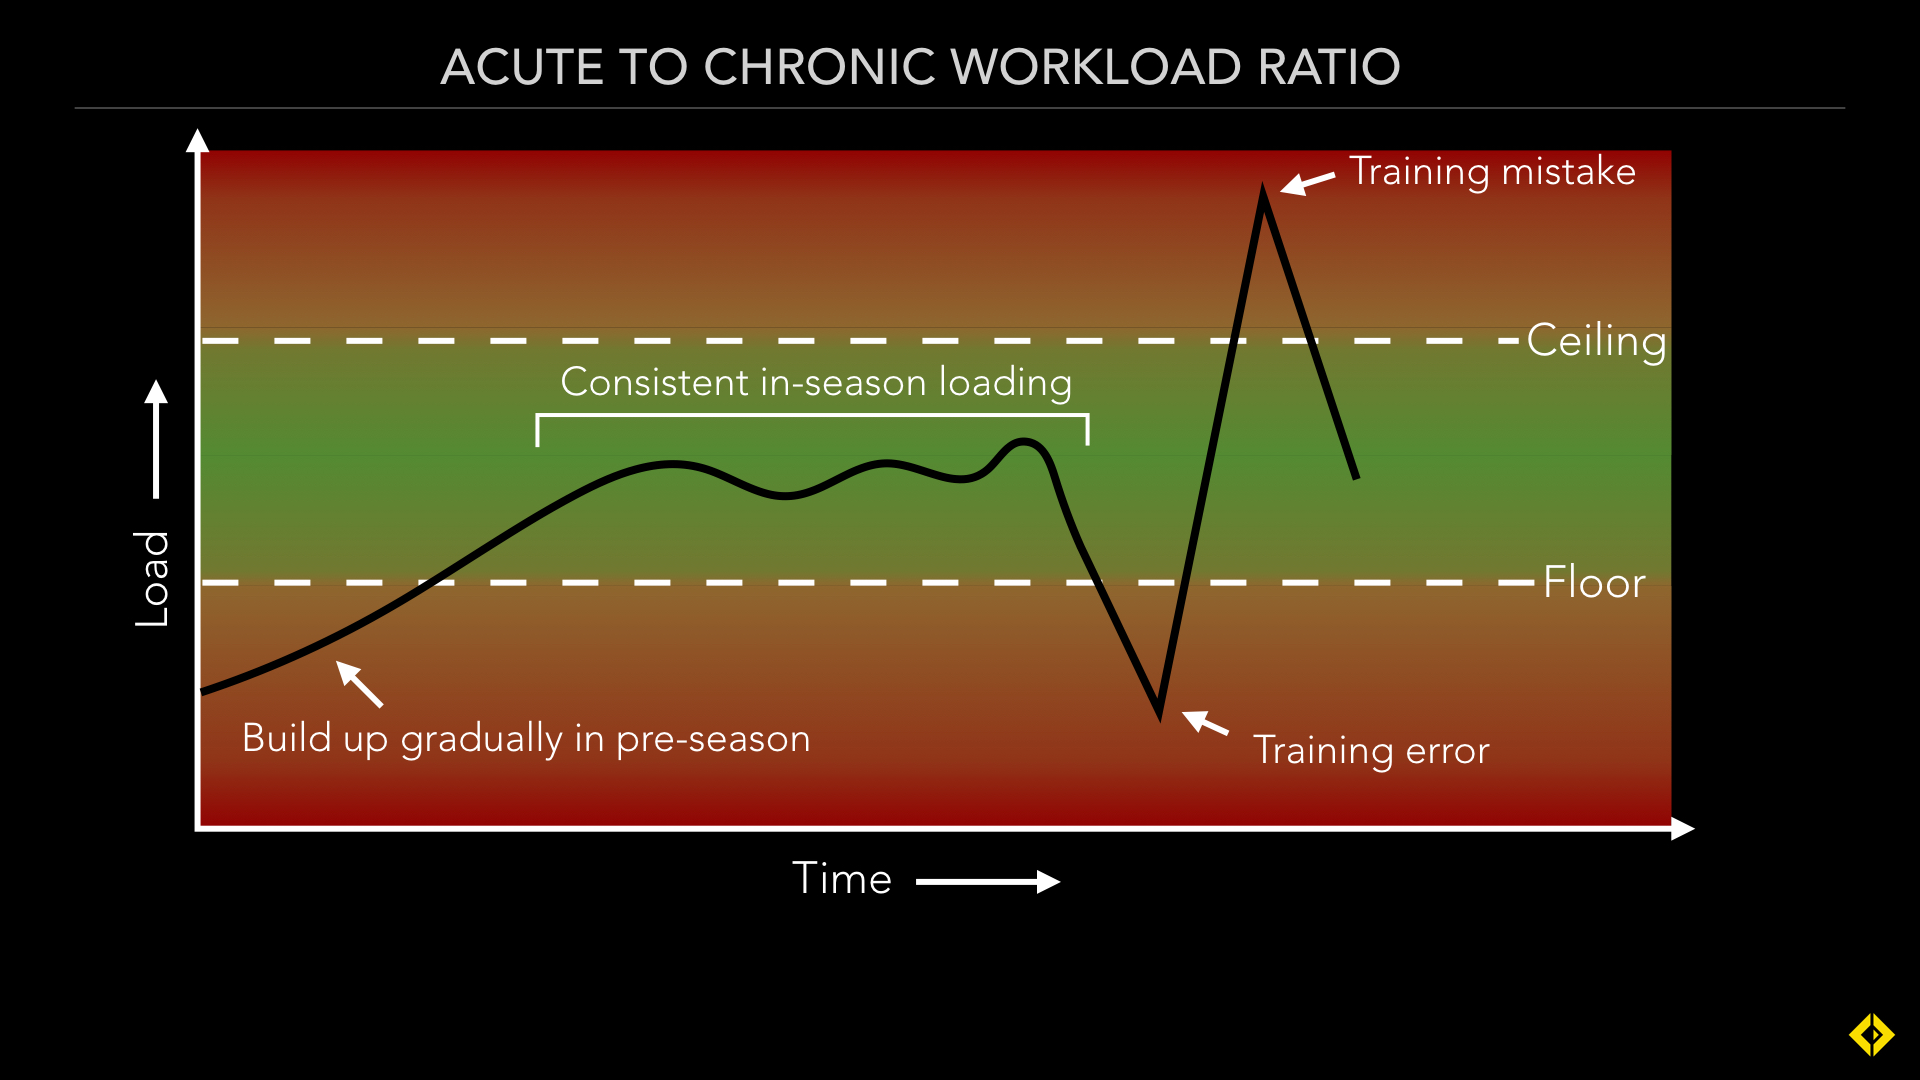 A training error is when you have an unpredicted or unavoidable lapse in acute workload (due to illness, holiday, injury etc). While a training mistake is when you try to overcompensate to make up for the error (Training error is typically a drop in loading, but they can also be accidental spikes due to camps or tournaments).